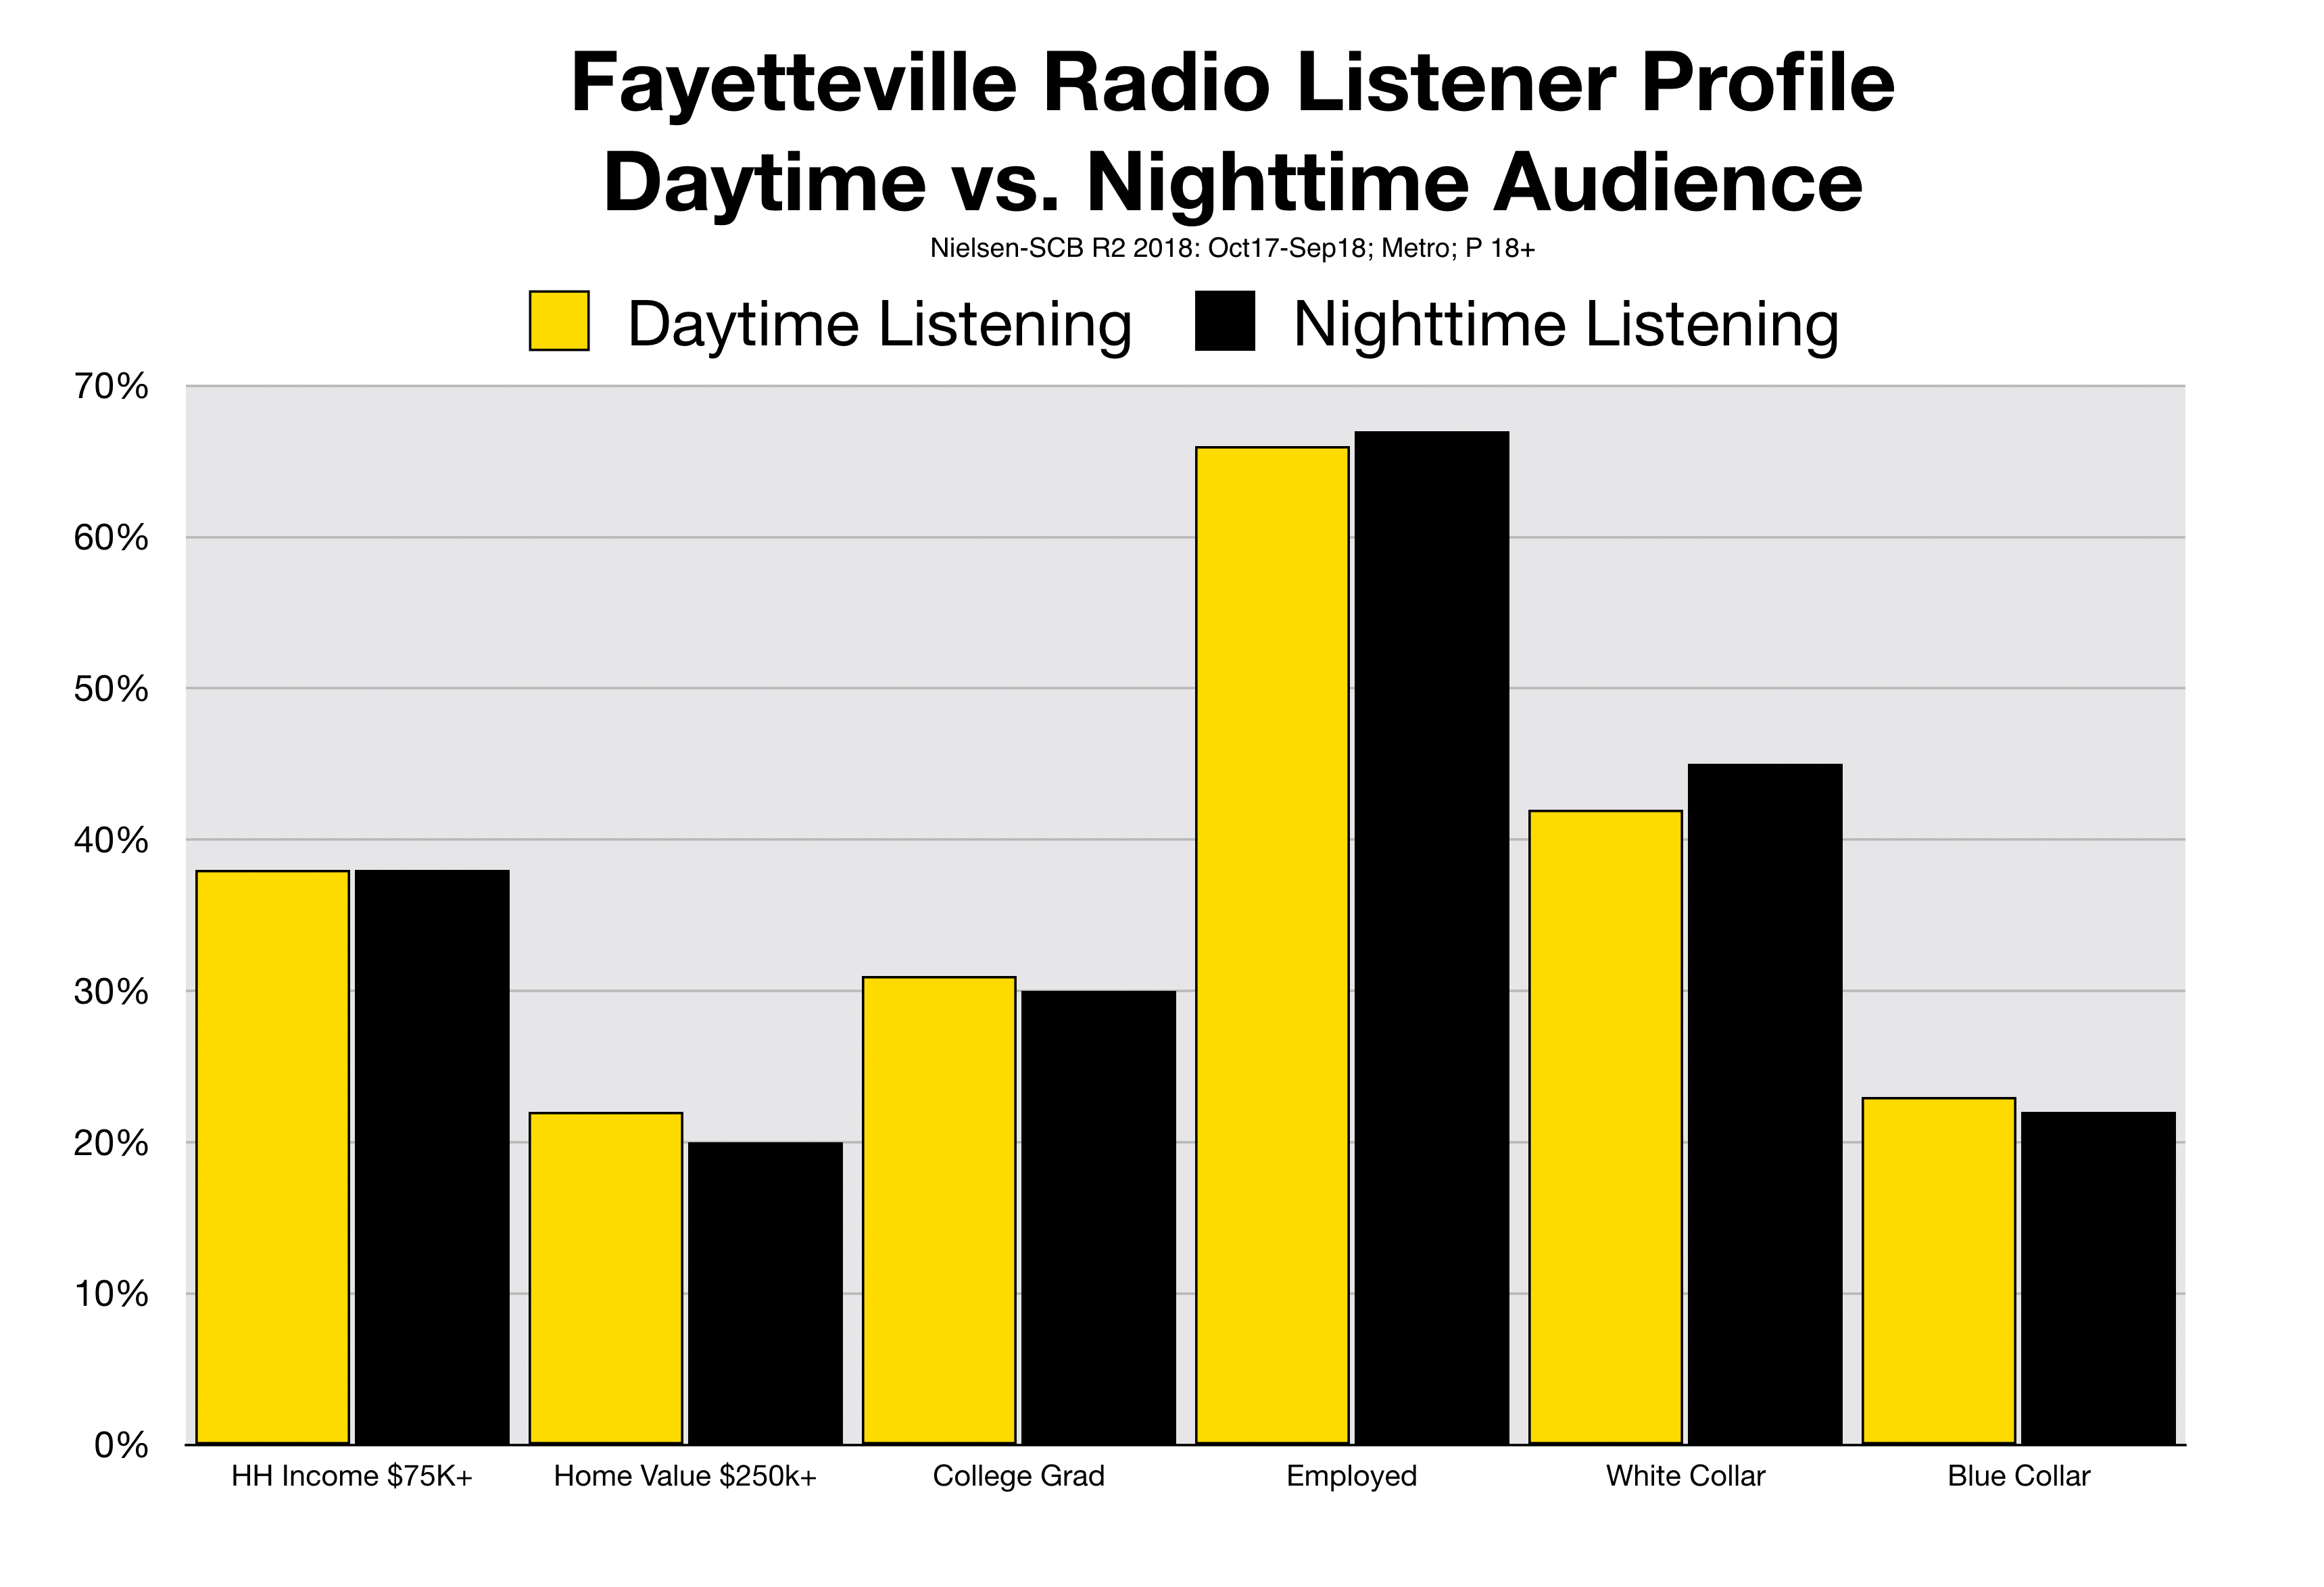 Advertise in Fayetteville Consumer Profiles